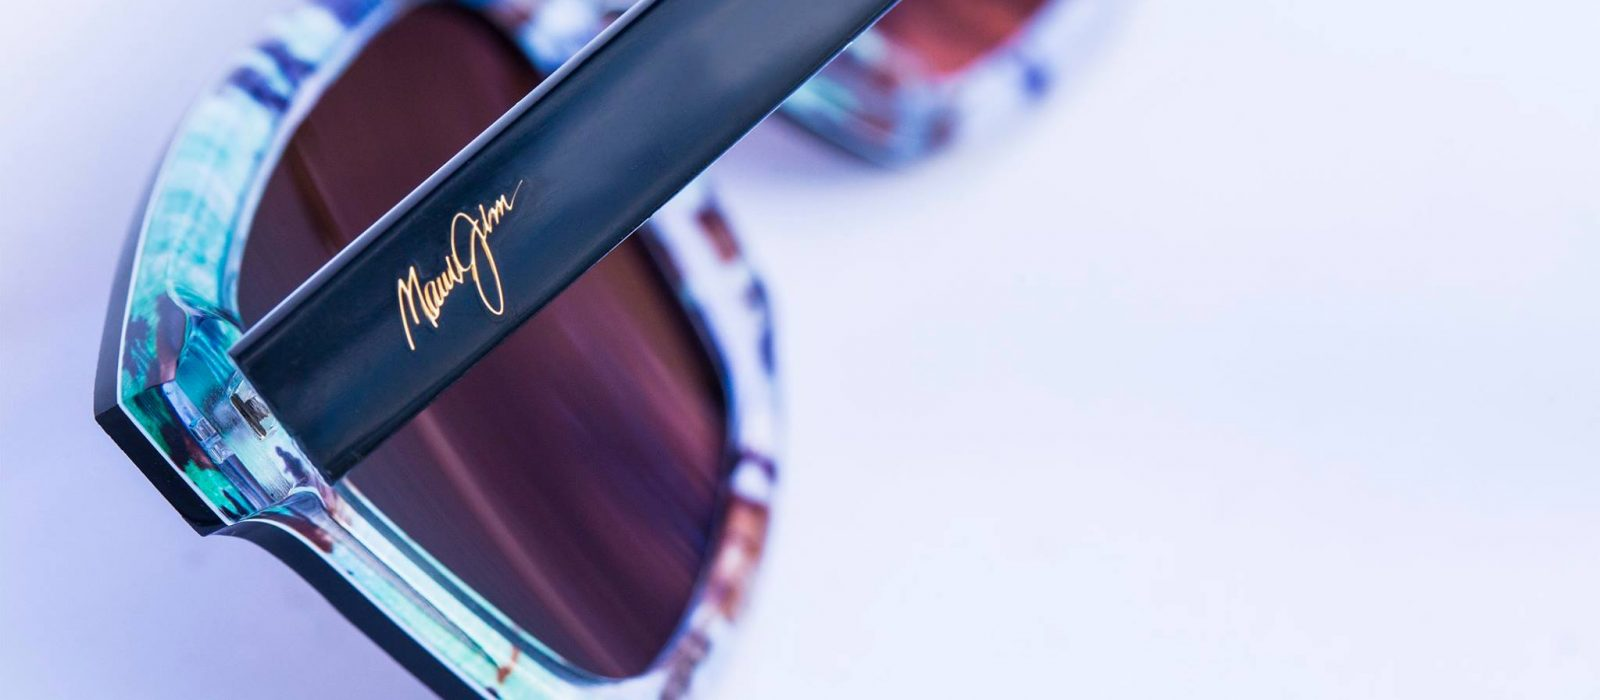 Hula Blue Maui Jim Sunglasses Available at Eye Etiquette